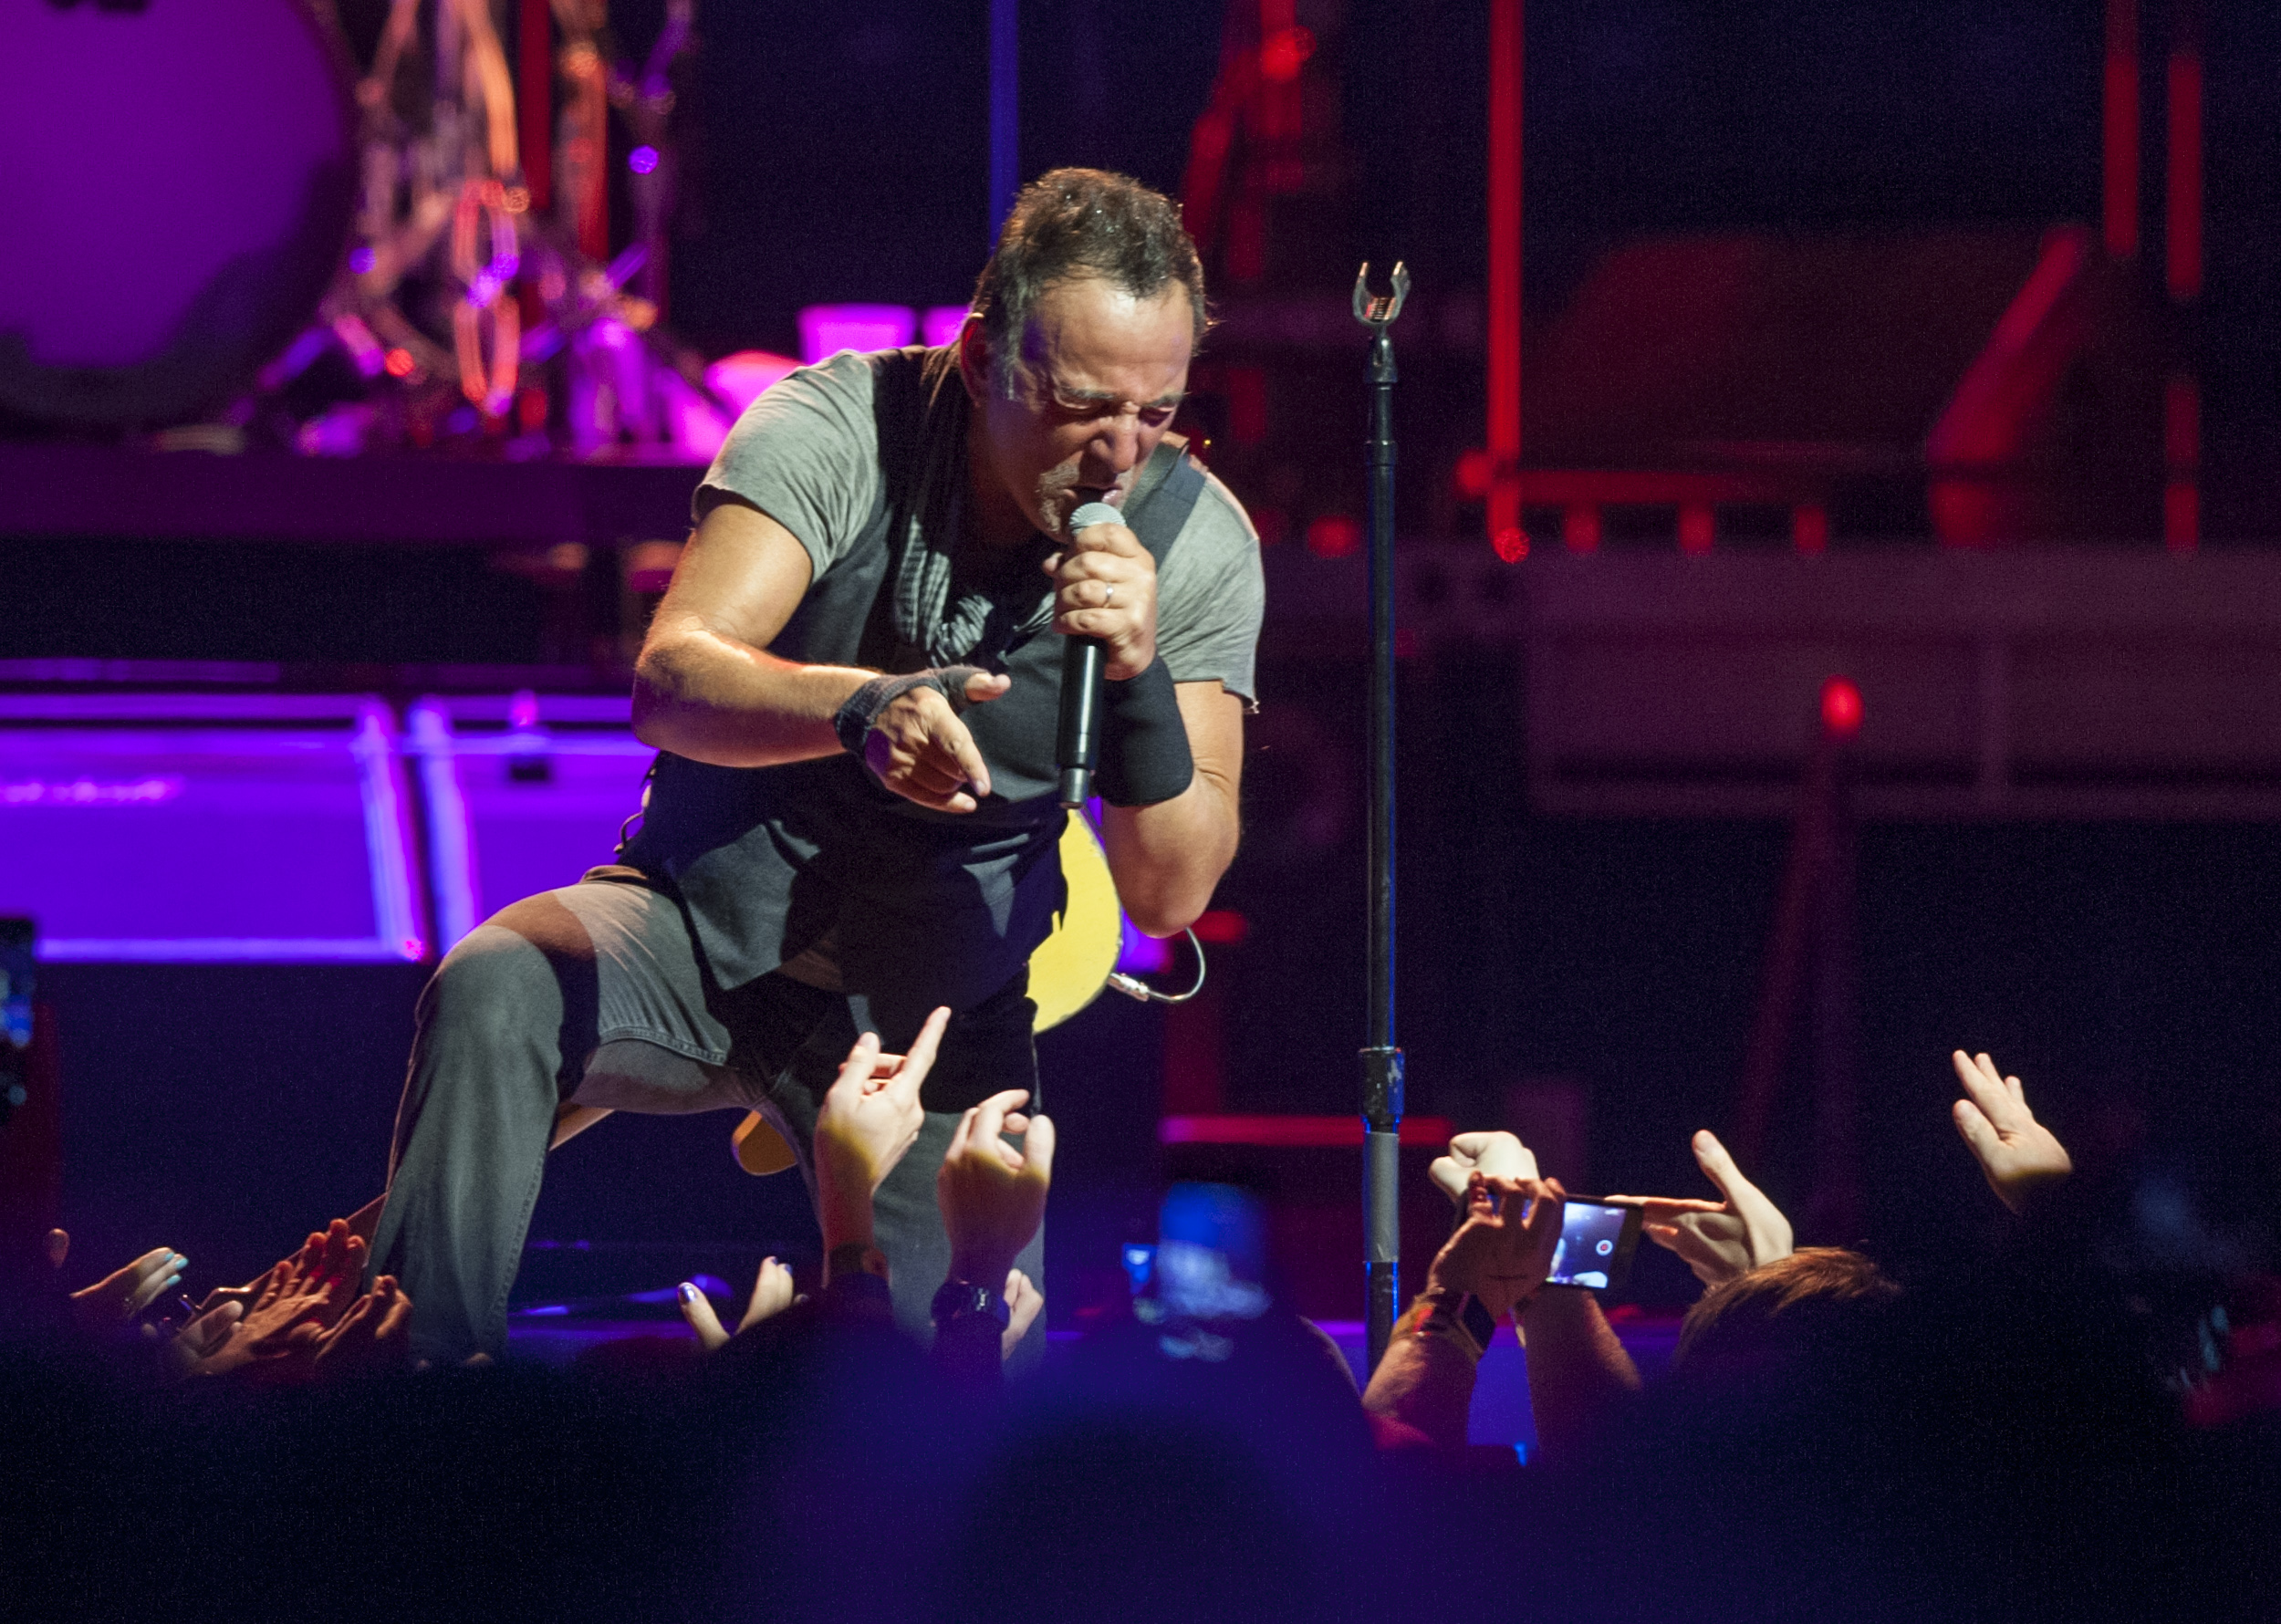 Bruce Springsteen climbs down to sing to his fans during his performance at the Bryce Jordan Center on Monday, April 18, 2016.